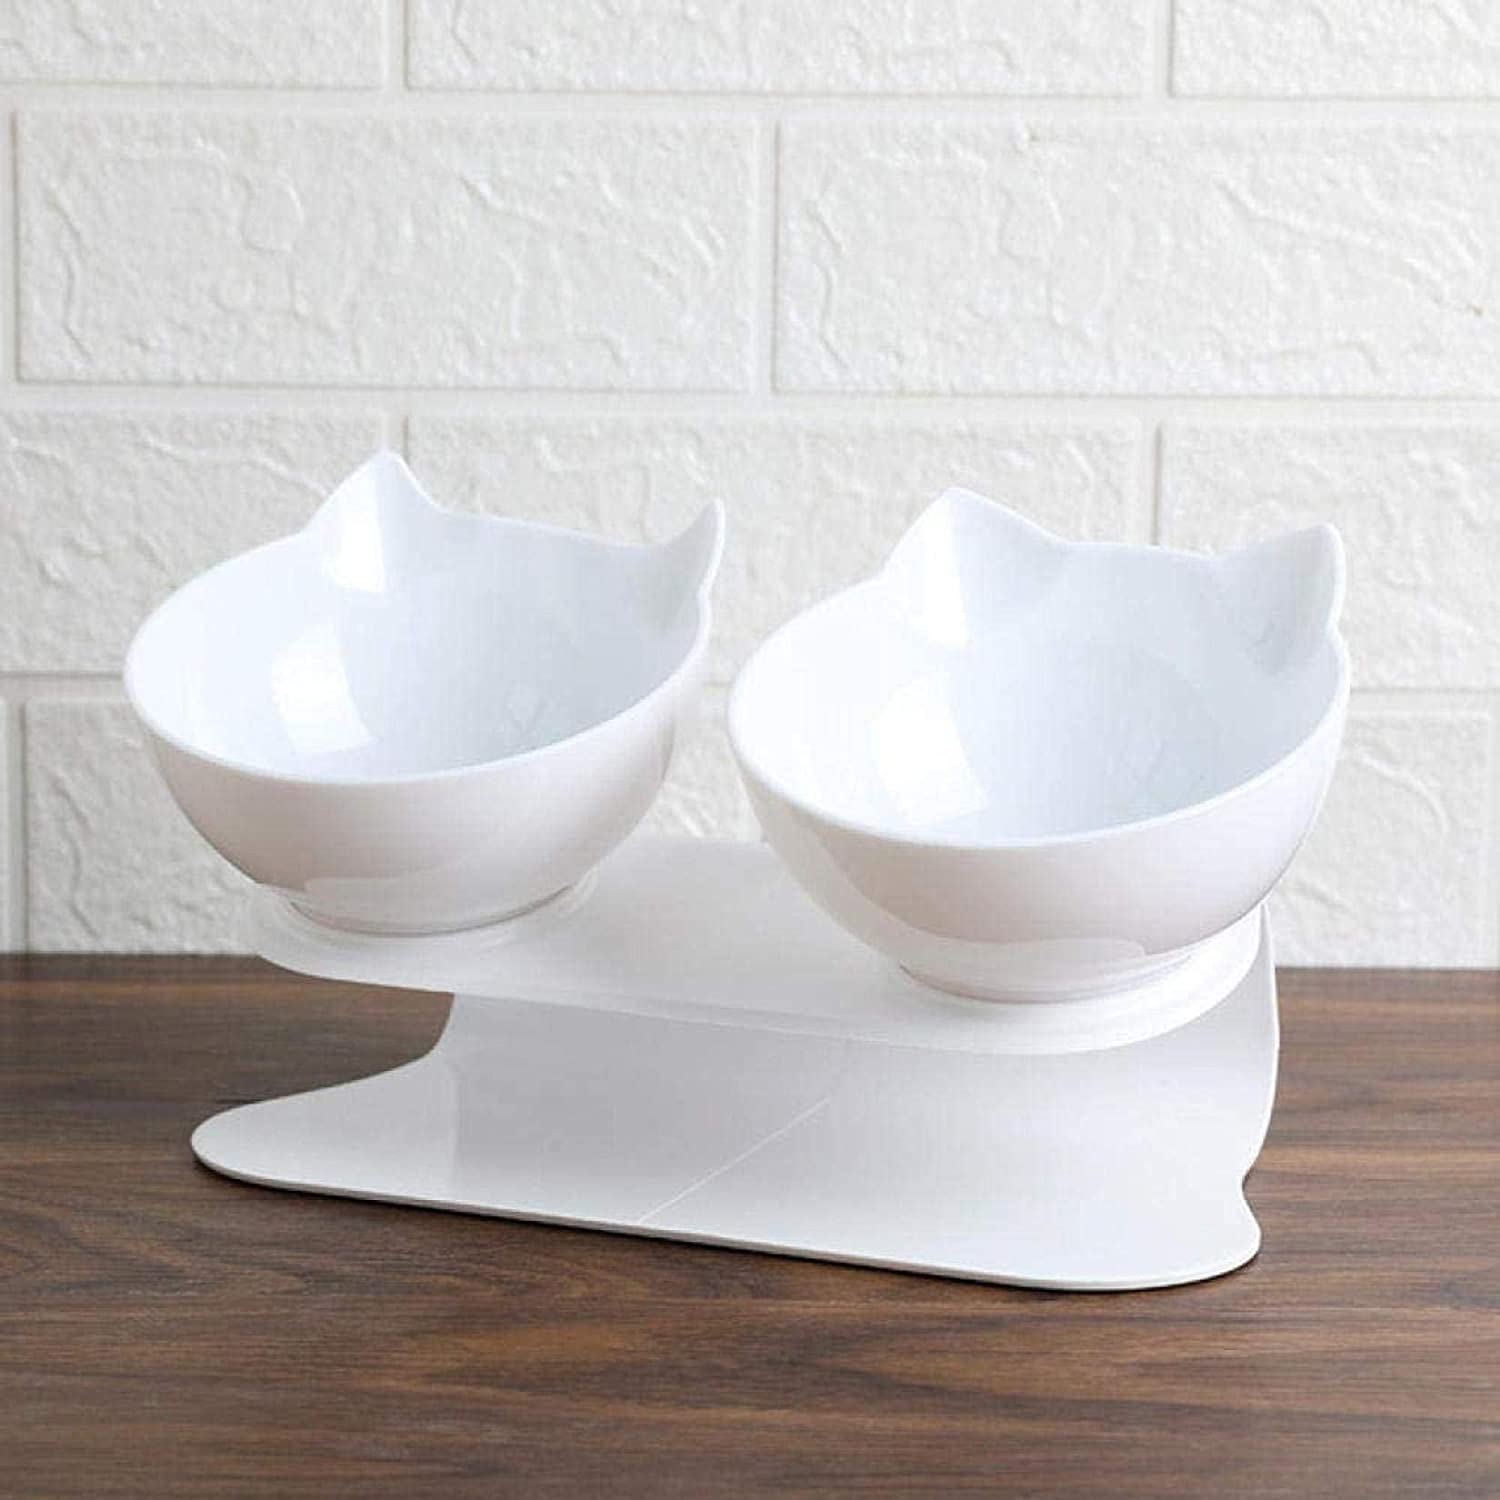 XHJTD Elevated Pet Bowls Super Special SALE held Creative Cheap Double with Raised Stan